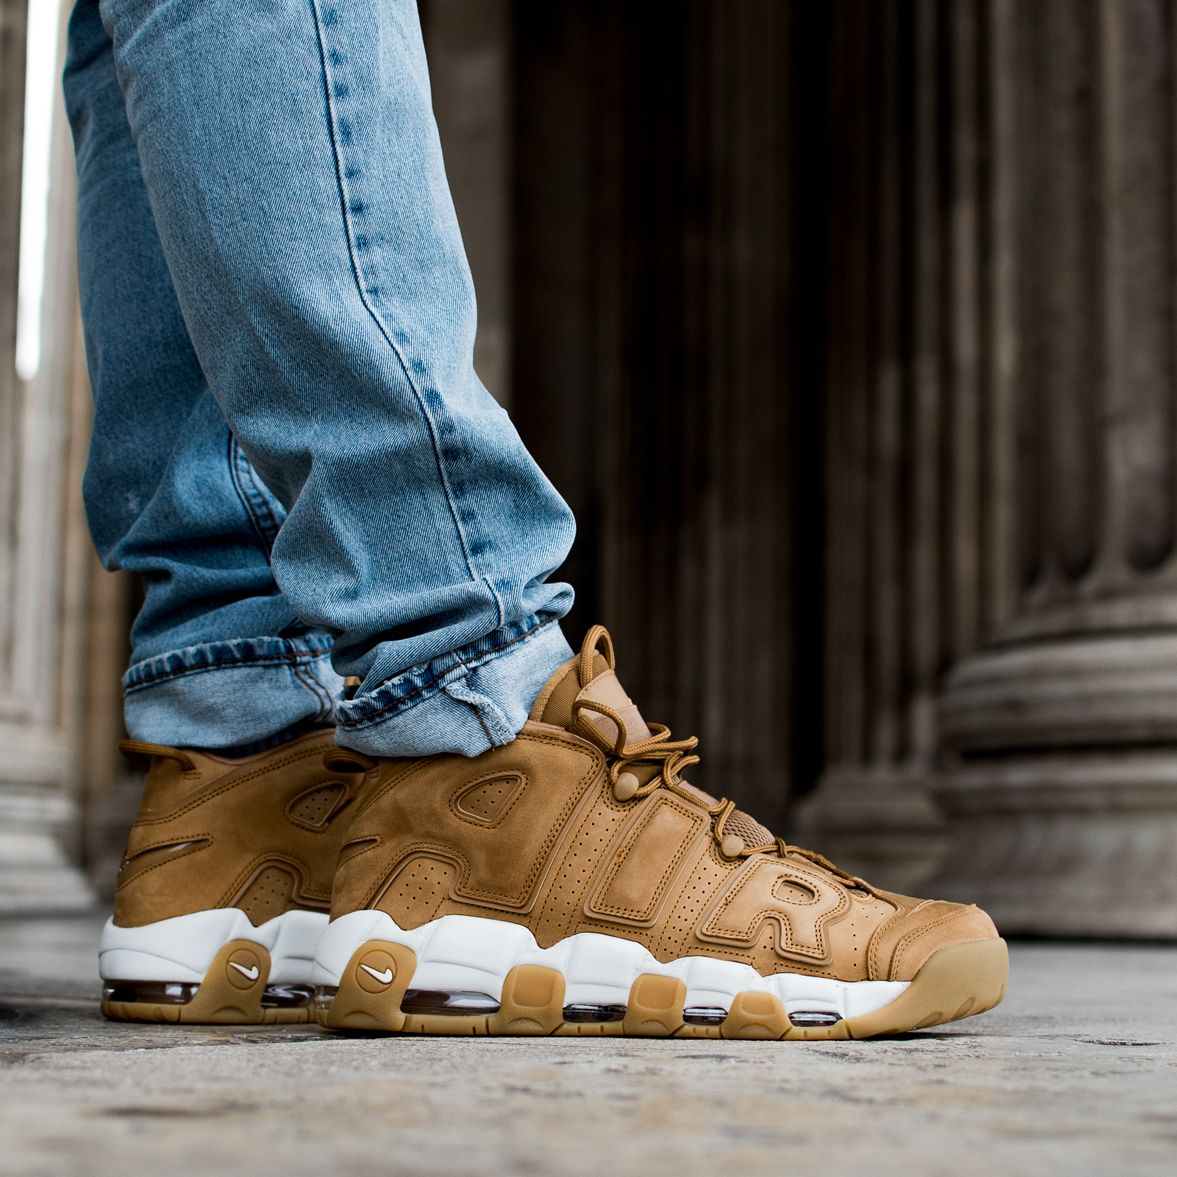 Nota perdita iniettare  Nike Air More Uptempo '96 in a Flax colorway. Just perfect for fall season  2017. Releases on KICKZ.com on October 14th. | Tennis clothes, Nike, Nike  air